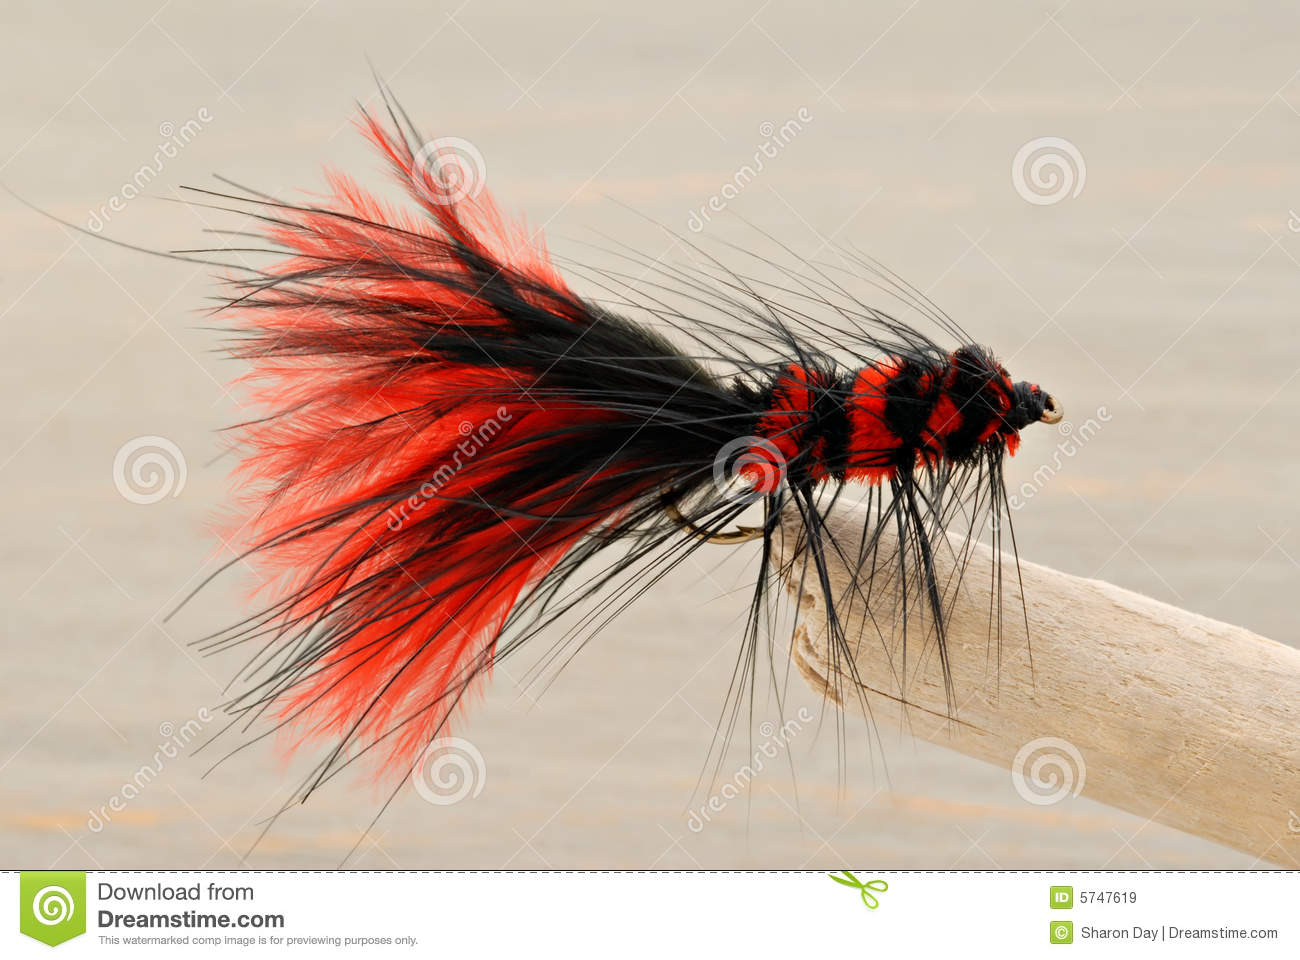 Fly fishing lure royalty free stock images image 5747619 for Dragonfly fishing lure